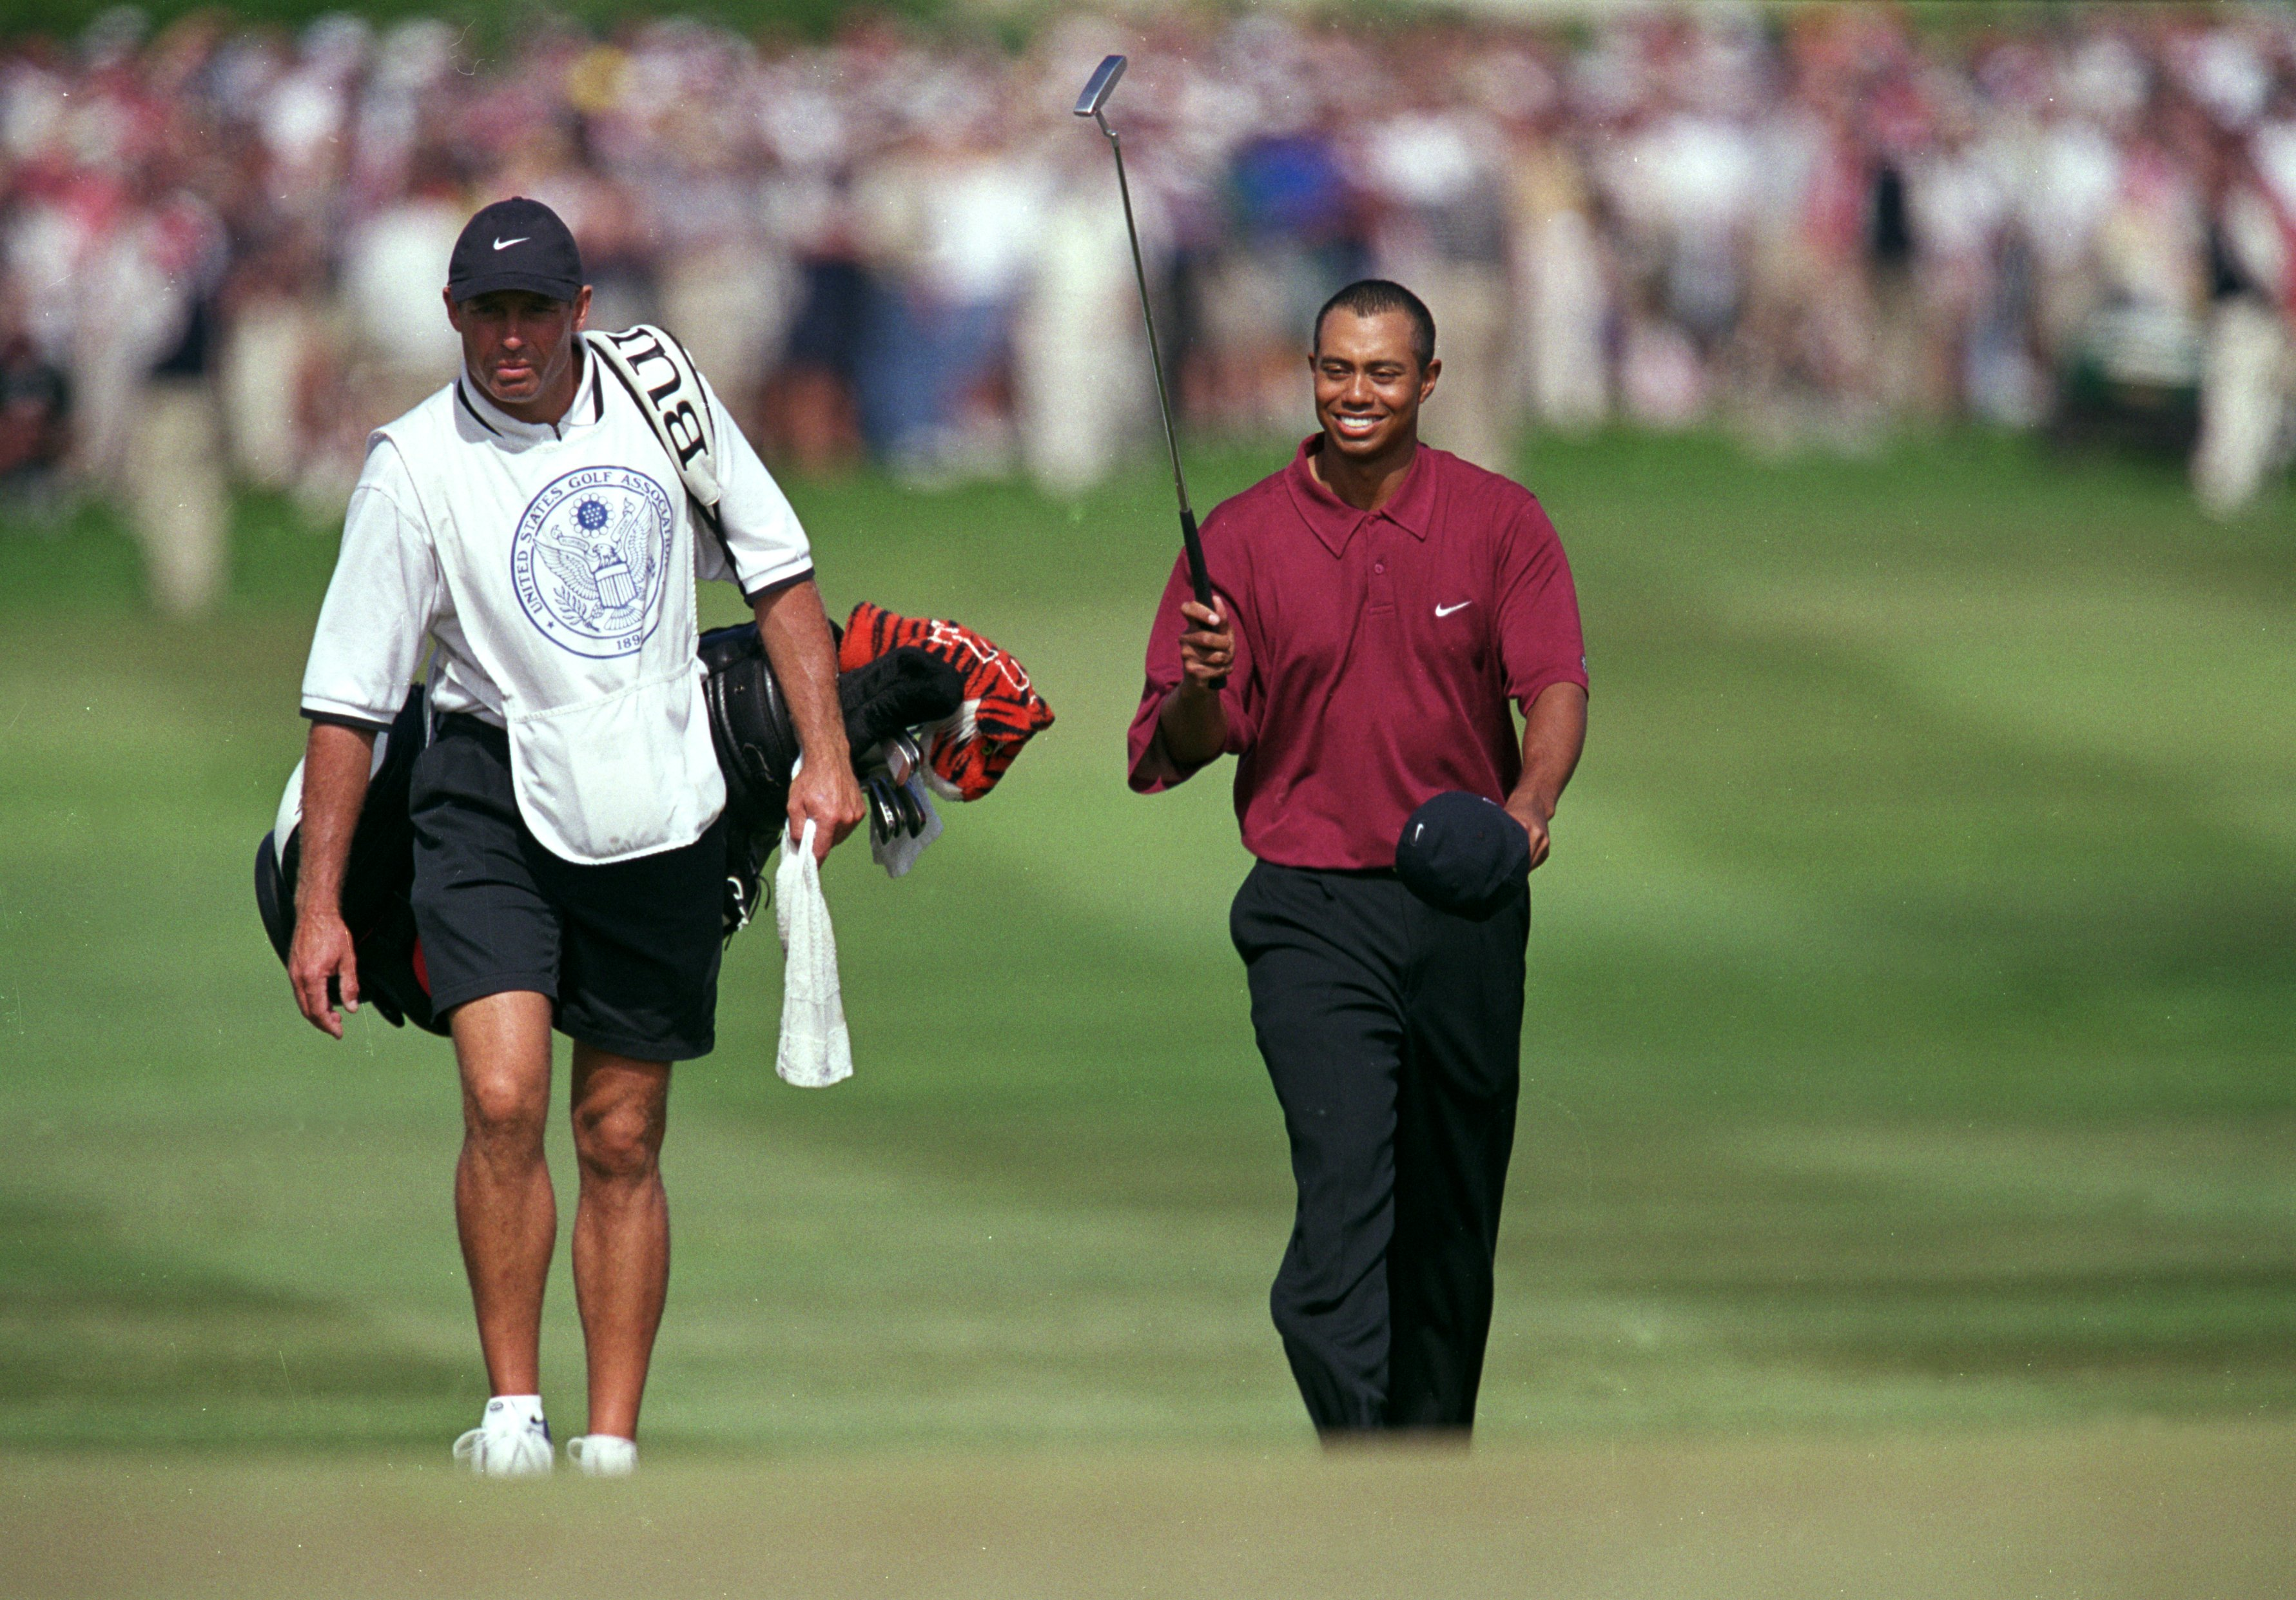 18 Jun 2000:  Tiger Woods walks up to the 18th hole during the 100th US Open at the Pebble Beach Golf Links in Pebble Beach, California.Mandatory Credit: Jamie Squire  /Allsport